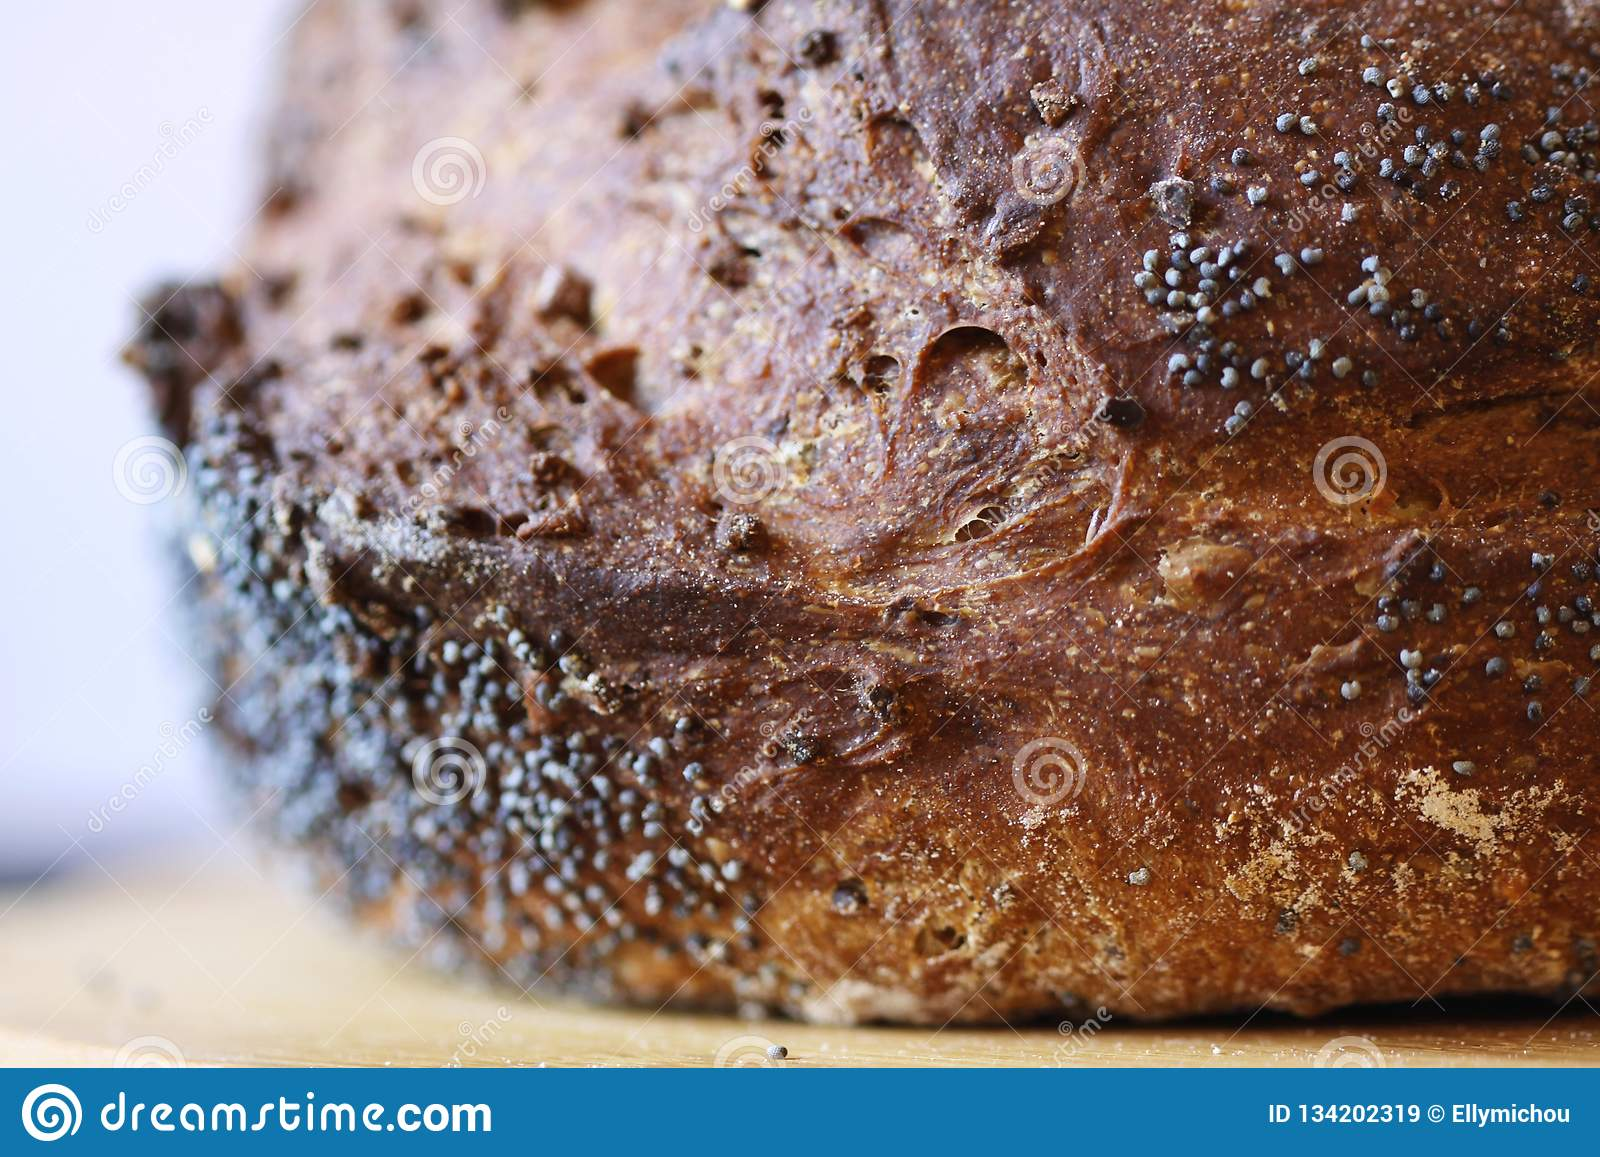 Biblical bread closeup stock image  Image of barley - 134202319